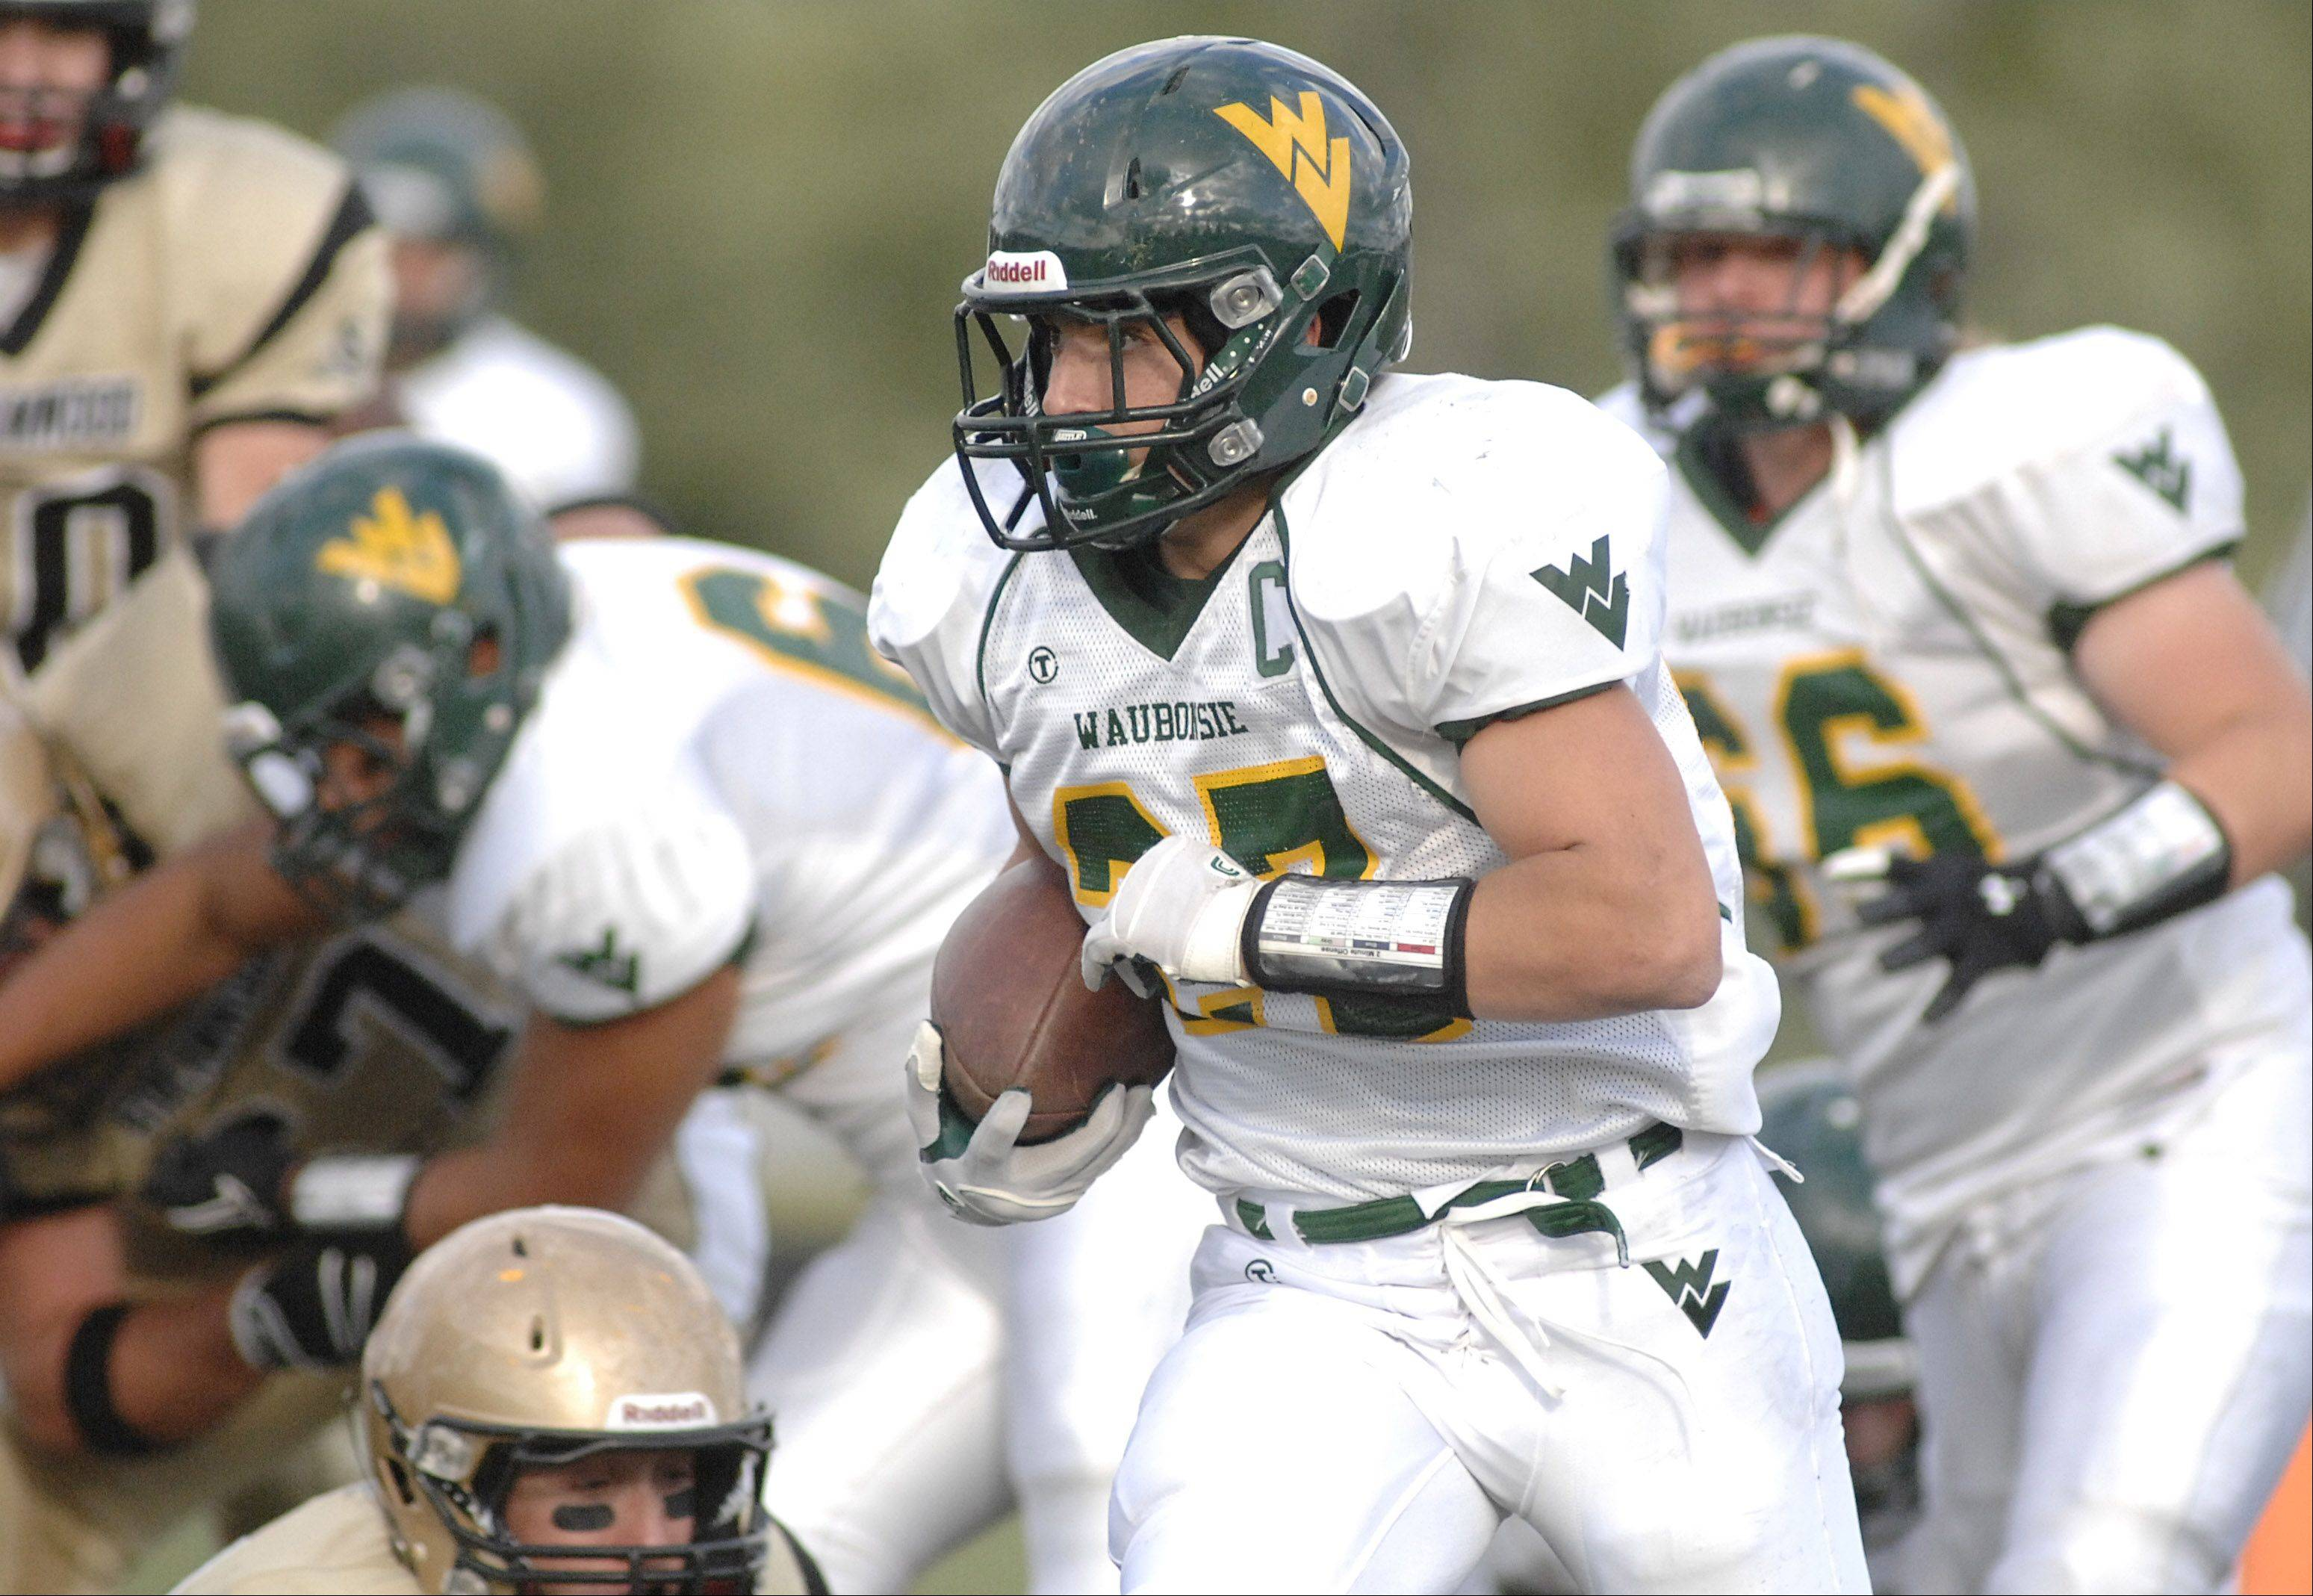 Waubonsie Valley 3-0 for 1st time since 1994